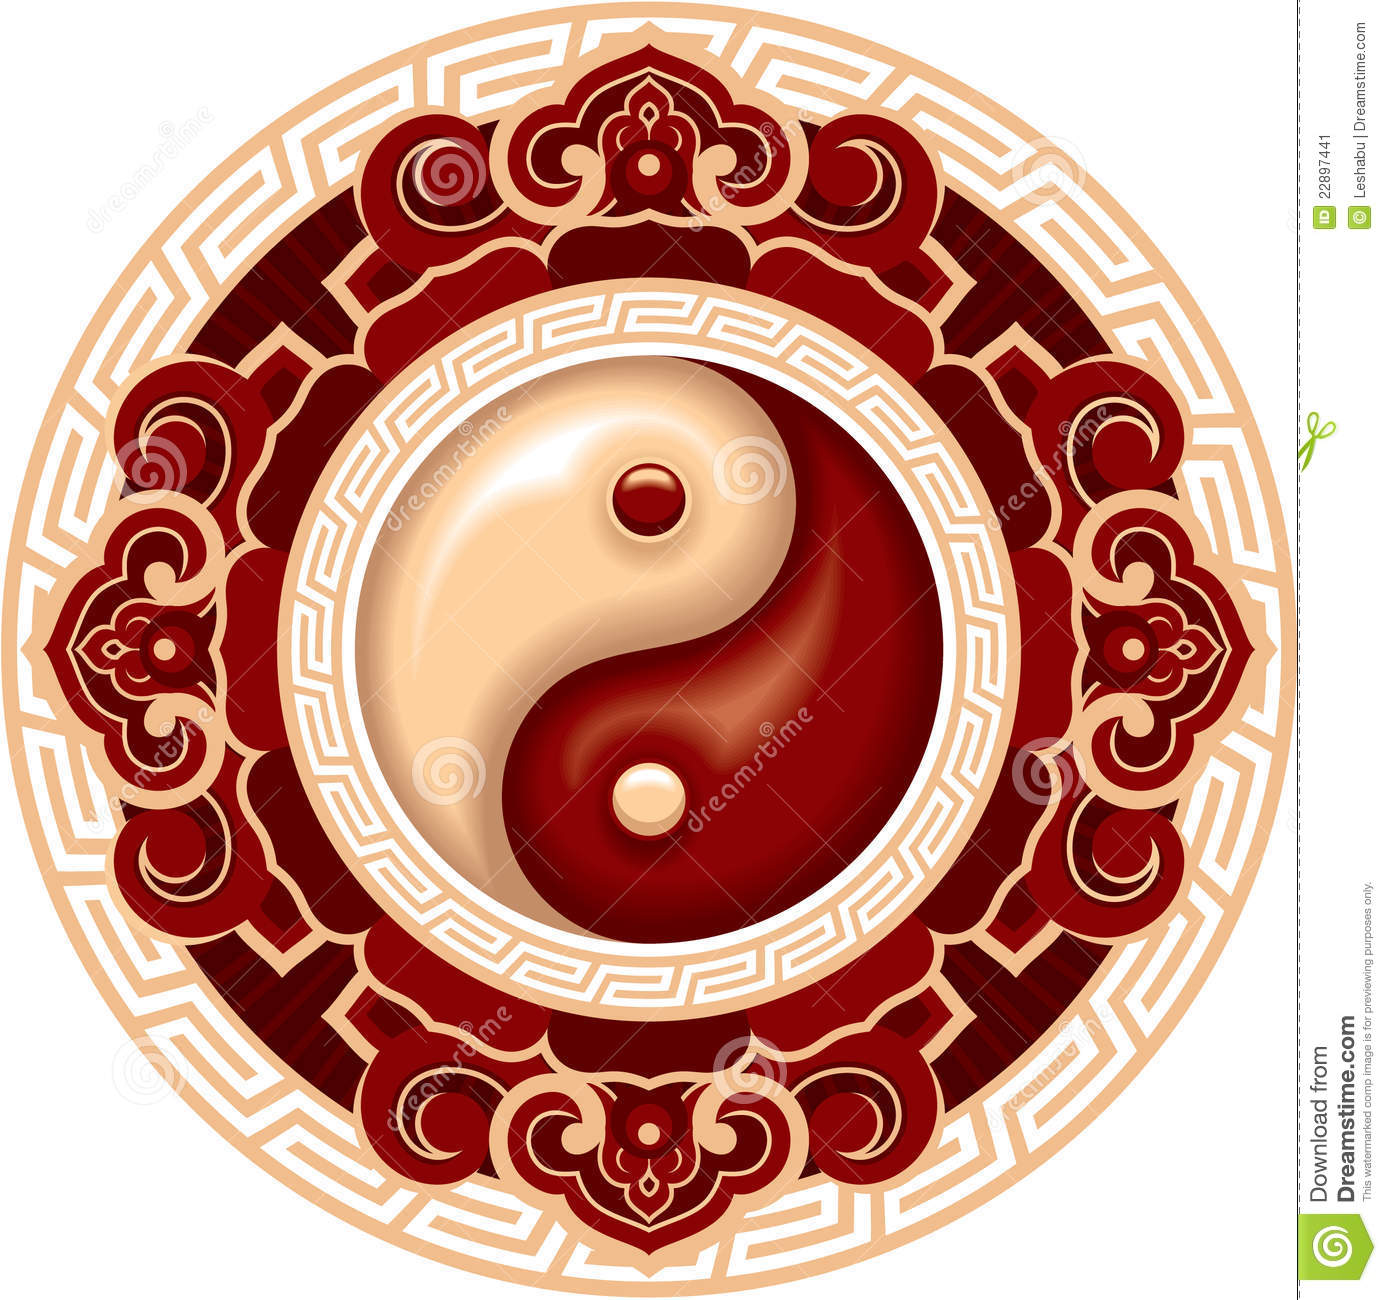 Composizione in Yin Yang